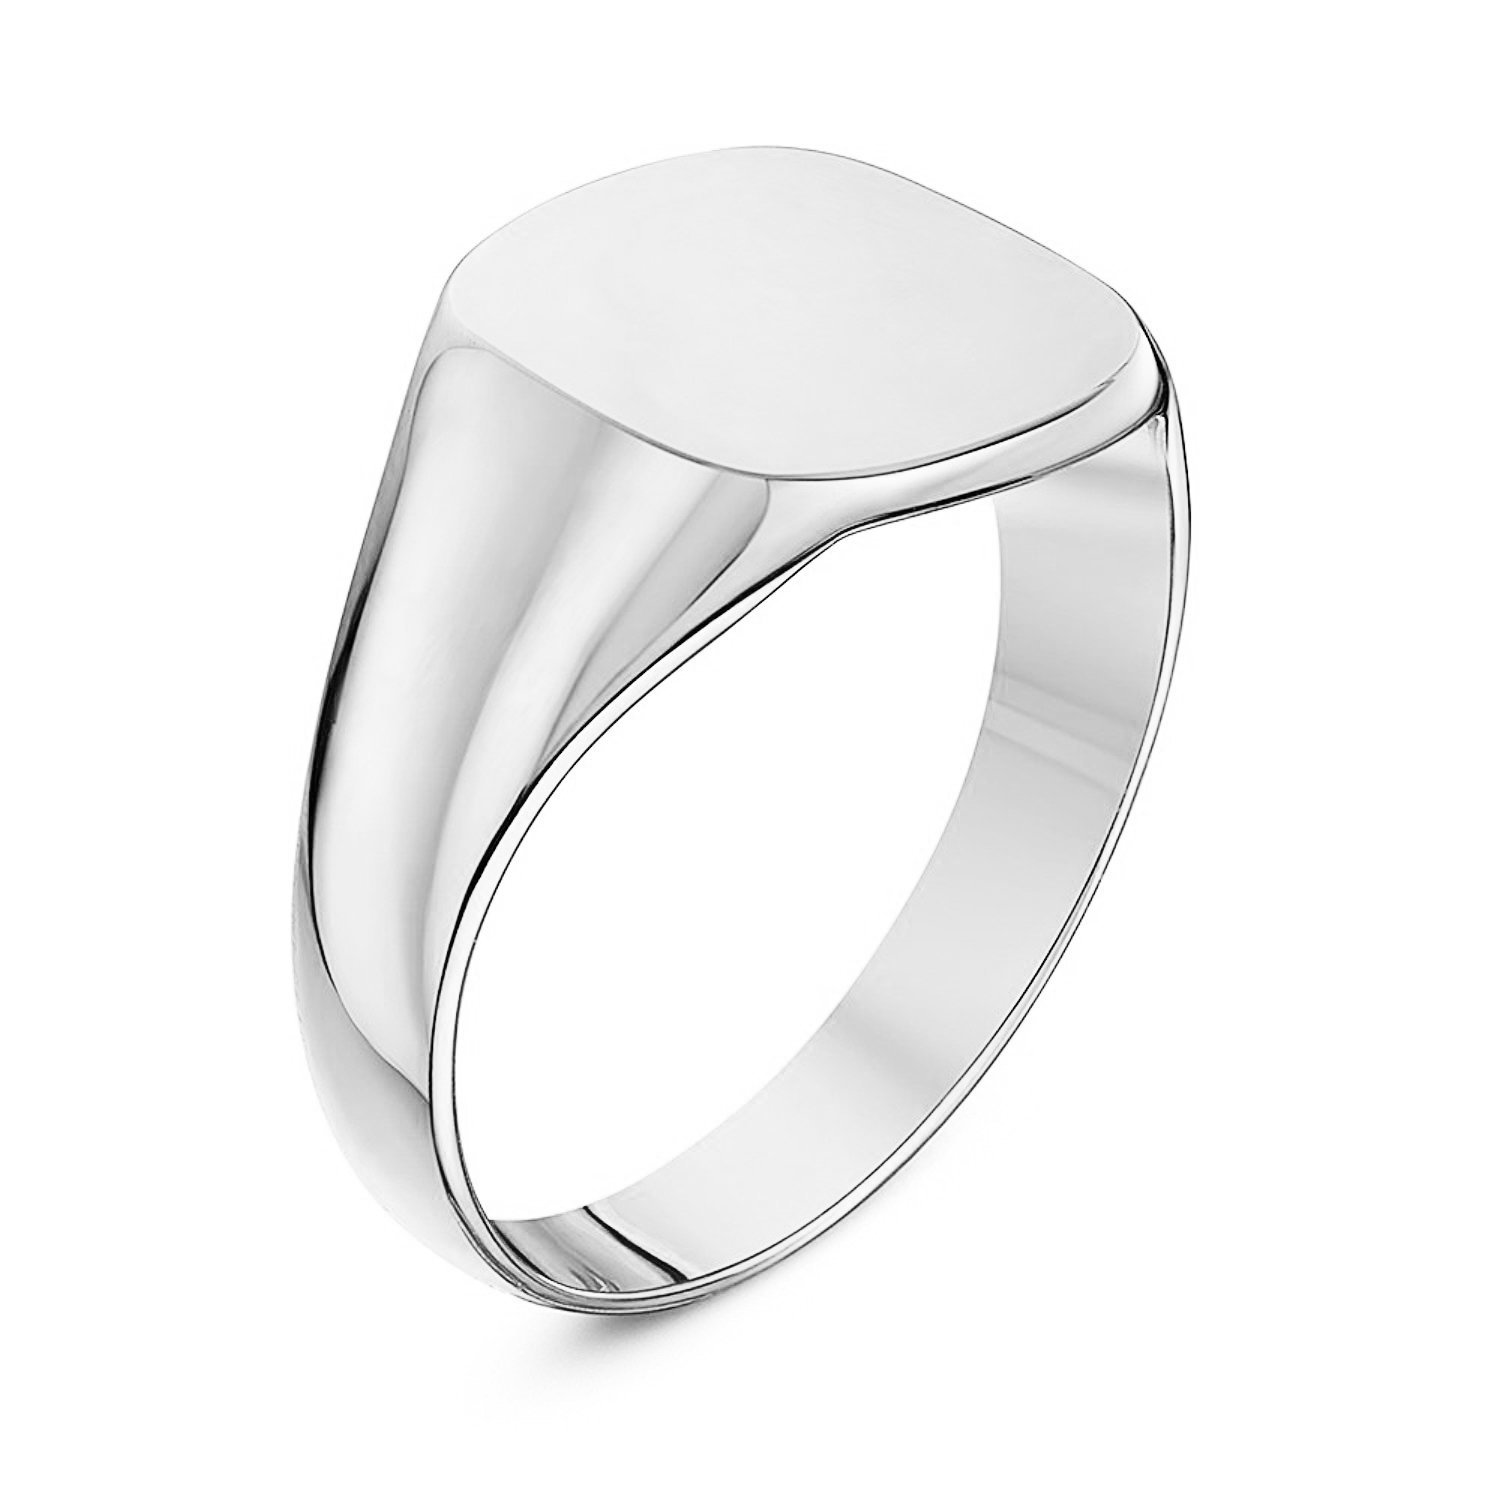 Unisex Sterling Silver Cushion Shape Heavy Weight Polished Signet Ring 12x12mm (6) by LANDA JEWEL (Image #3)